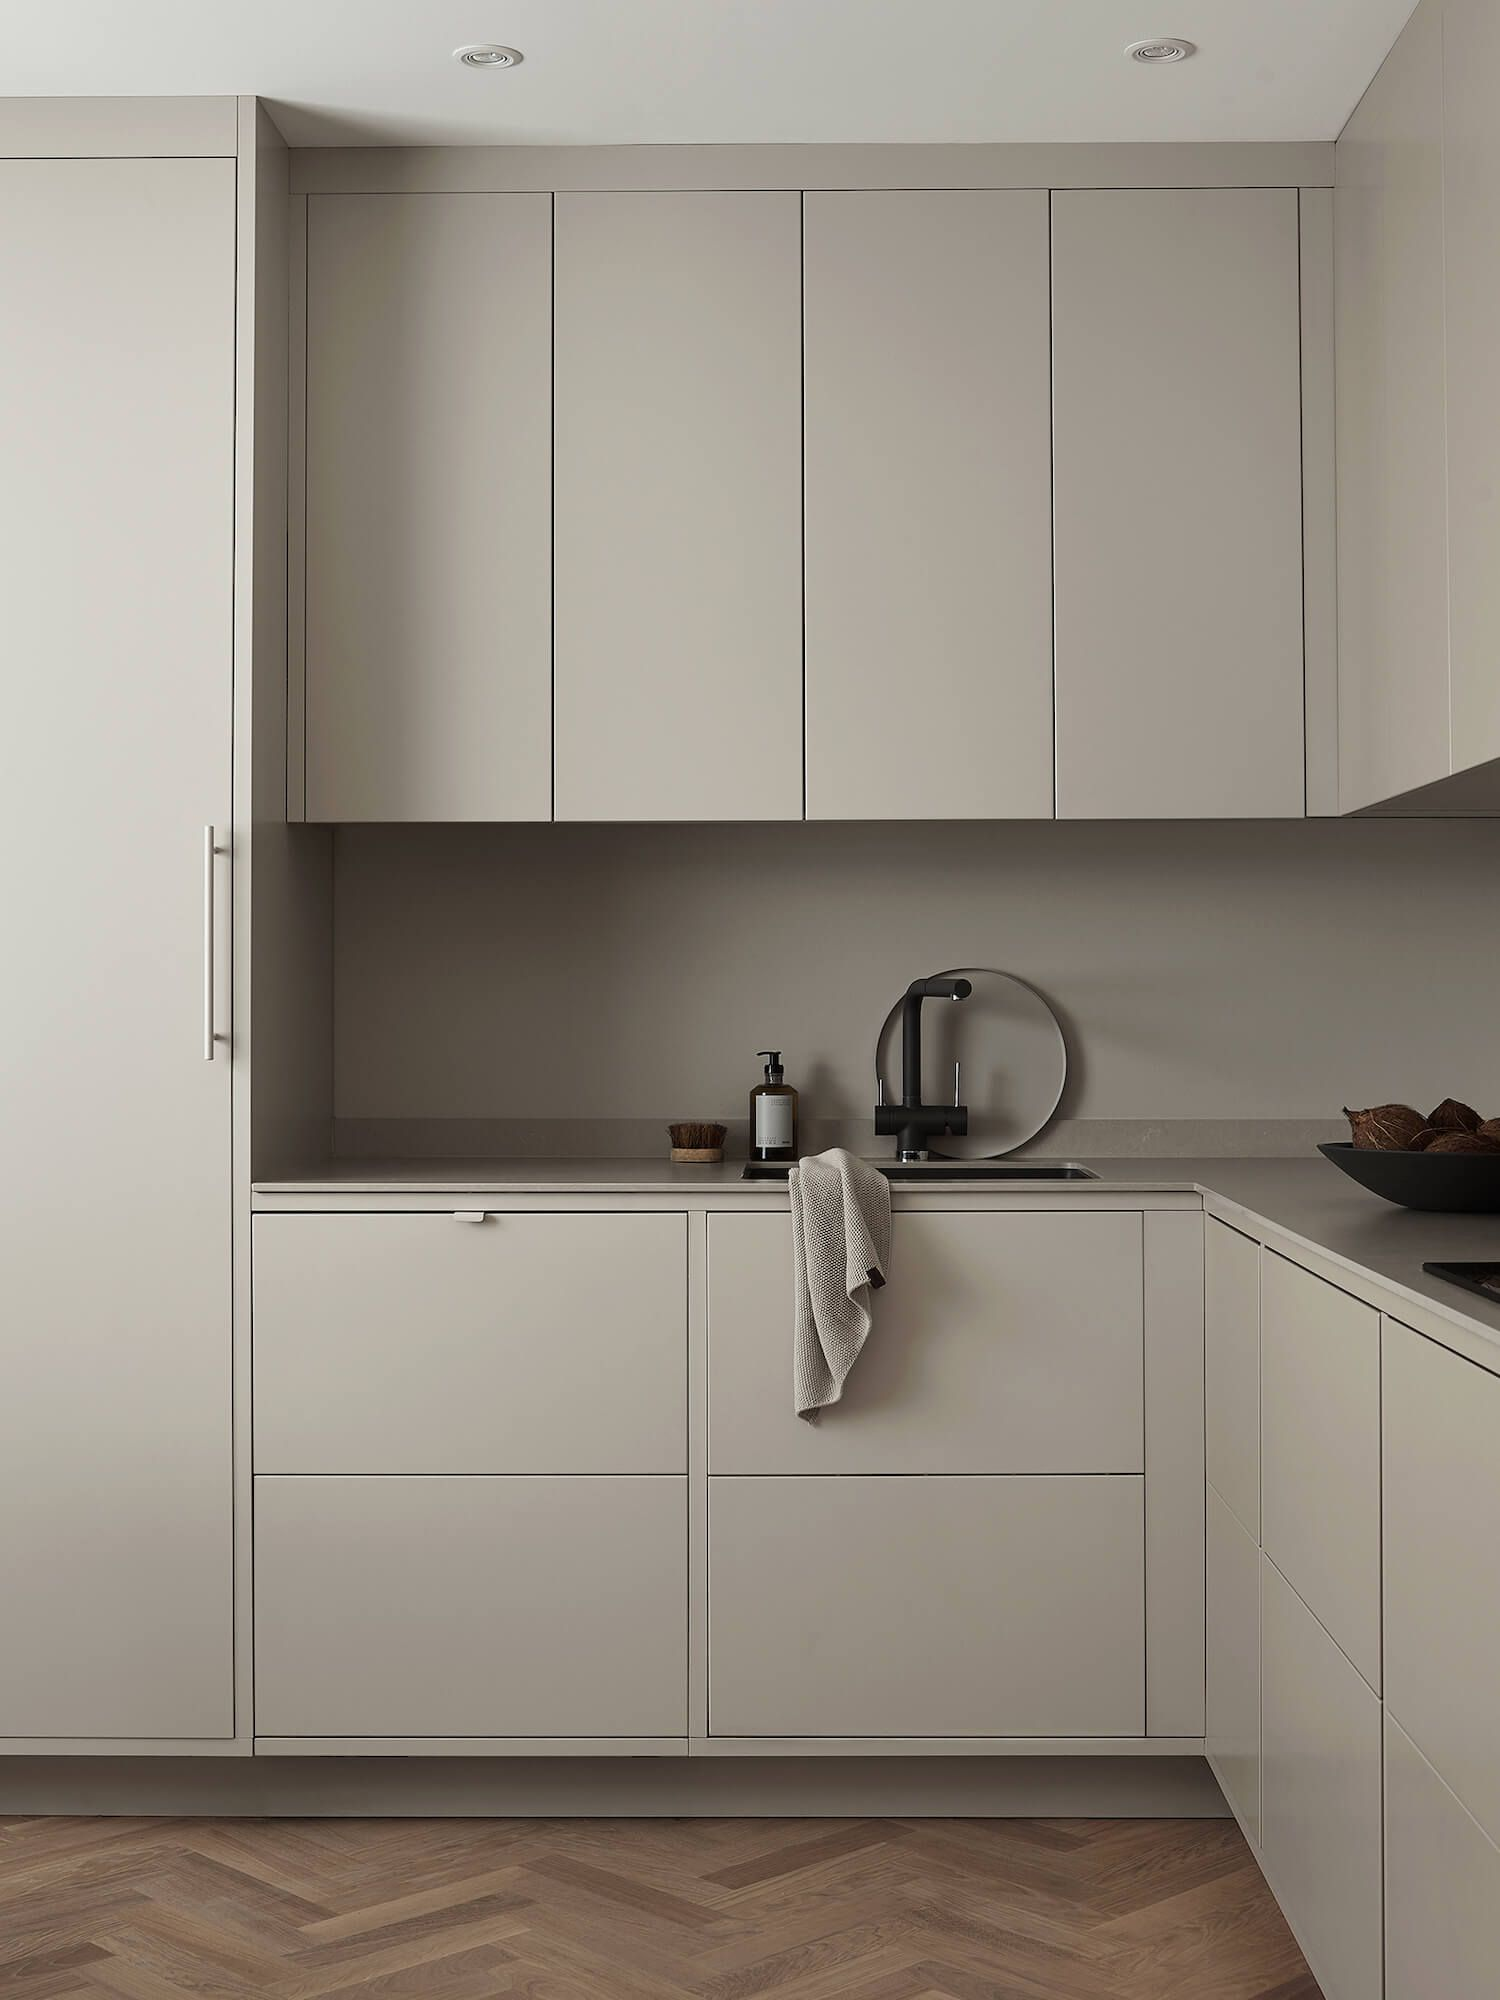 Kitchen | The Minimalist's Kitchen by Nordiska Kök | est living #minimalistkitchen